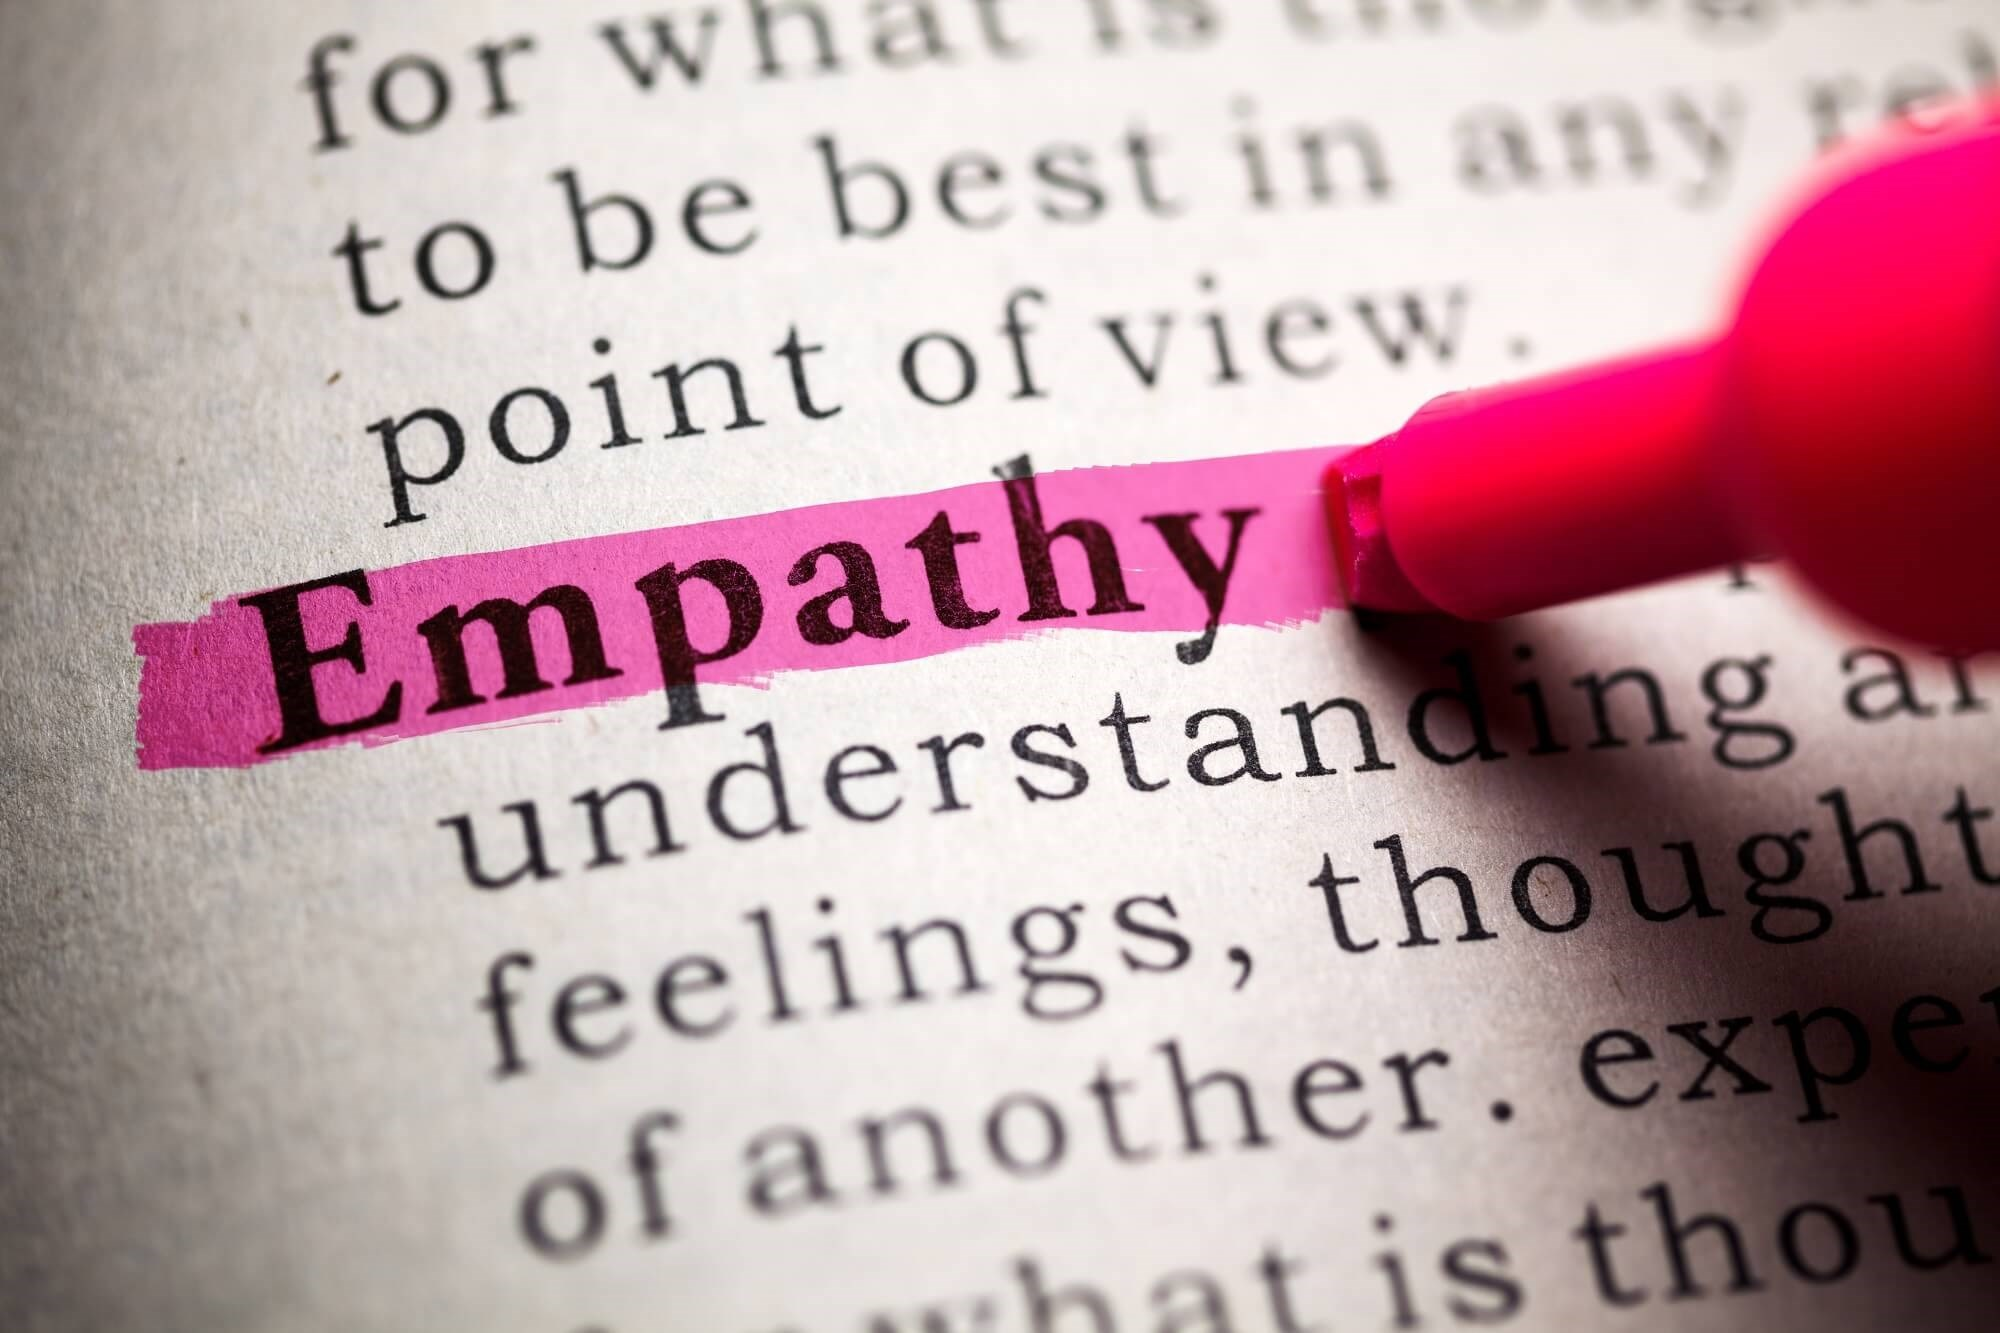 High Psychopathy Scores Associated With Lower Self-Reported Empathy Levels